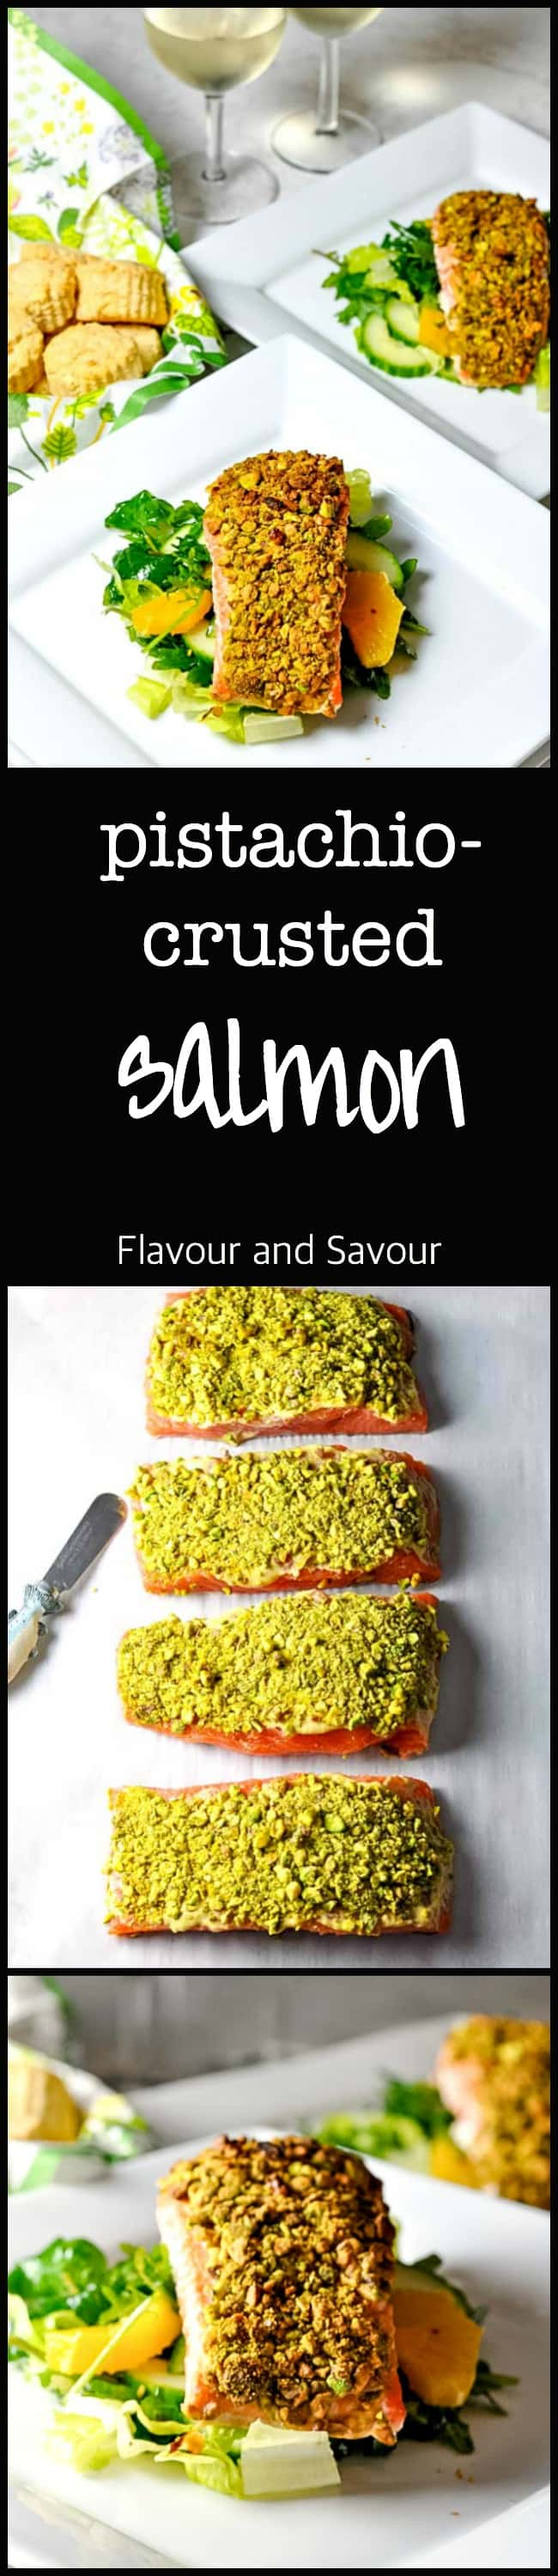 Add some flavour and crunch to your next salmon meal with this super easy Pistachio Crusted Salmon. Lots of lemon and mustard flavour!